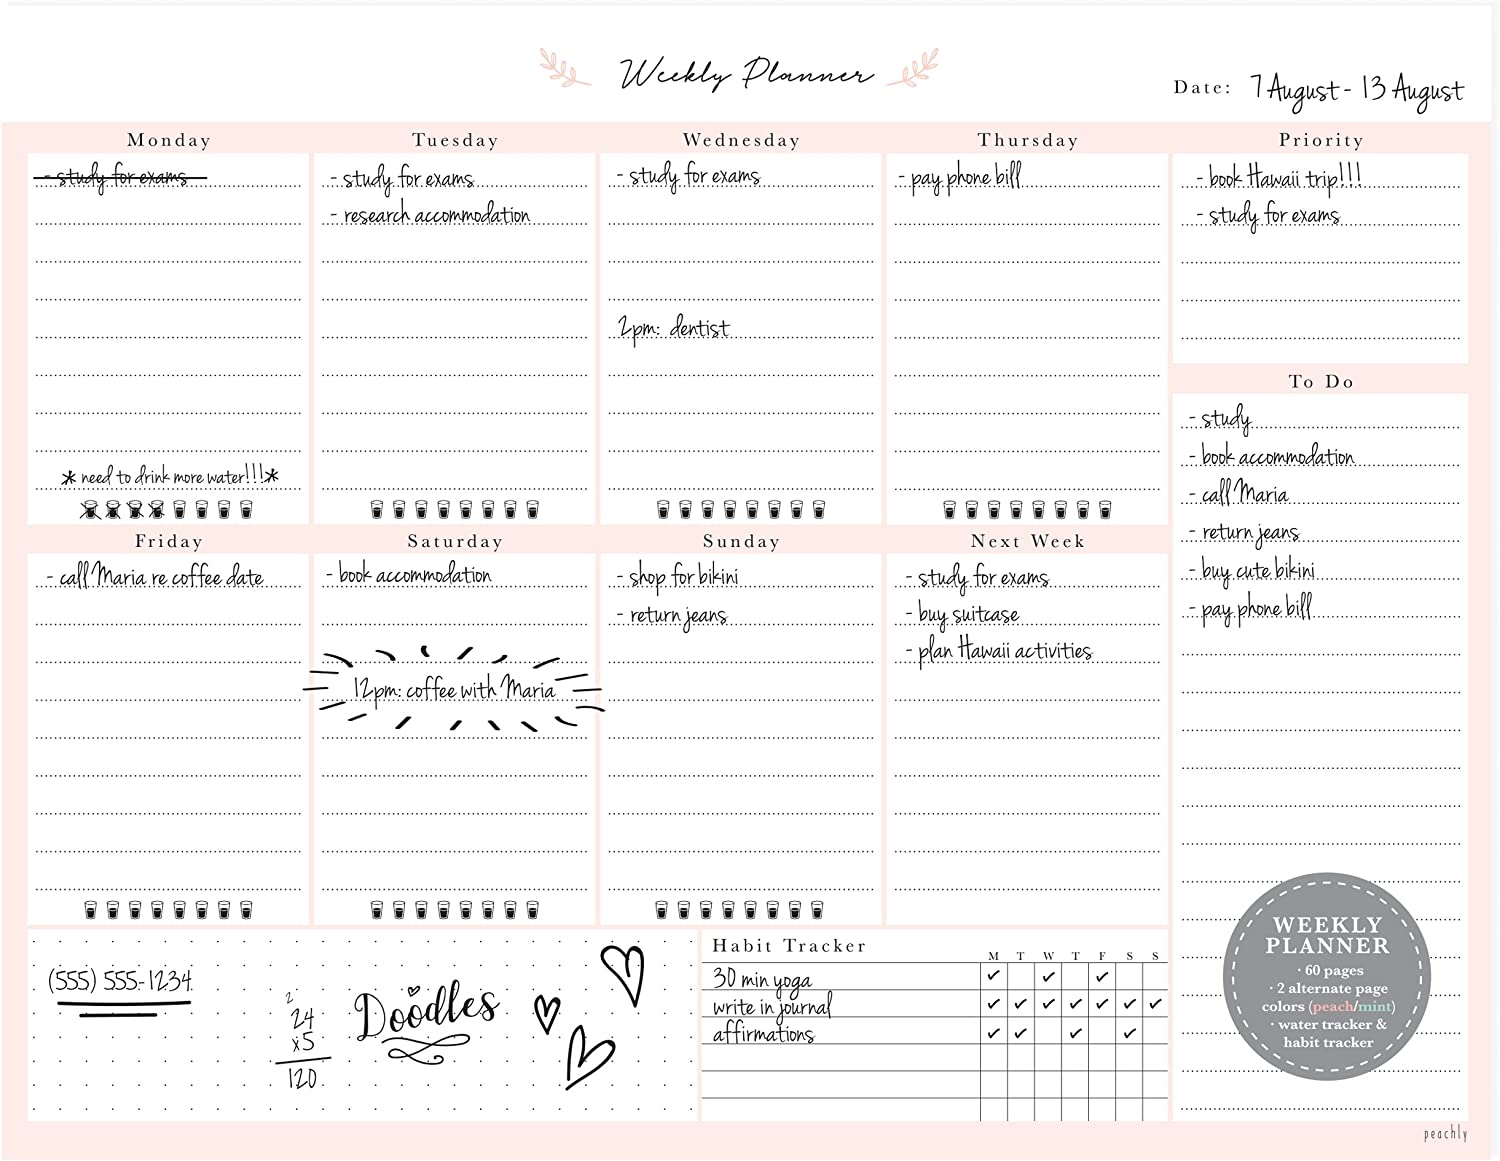 Desktop Weekly Planner Notepad 8.5x11 | 60 Undated Tear-Off Pages | Schedule Daily to-Do Lists | Increase Your Productivity in Less Than 5 Minutes A Week | Achieve Your Goals | Peach and Mint Fern